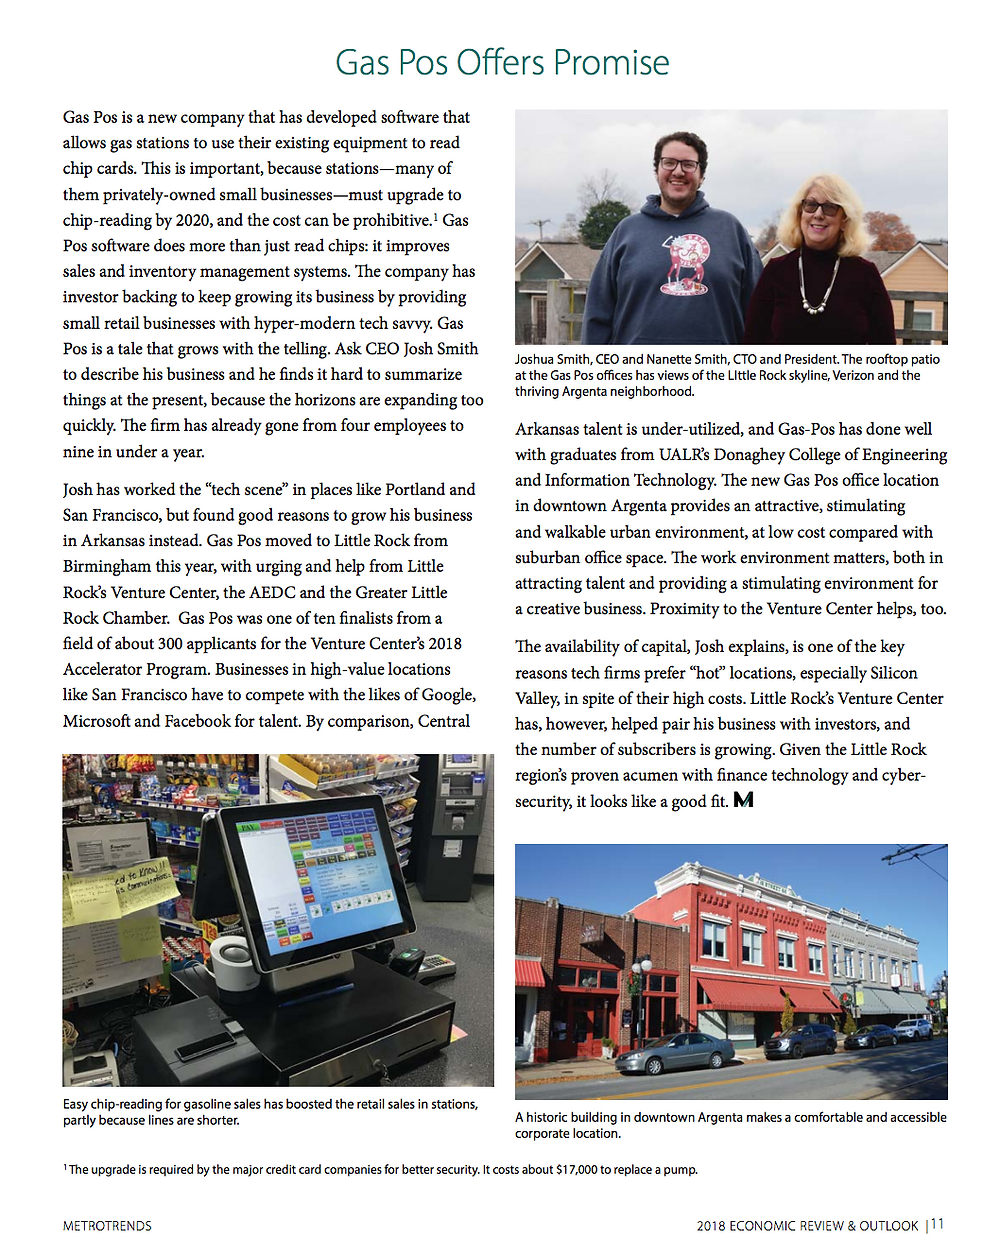 """Gas Pos Offers Promise"" in Metroplan's Metrotrends publication"